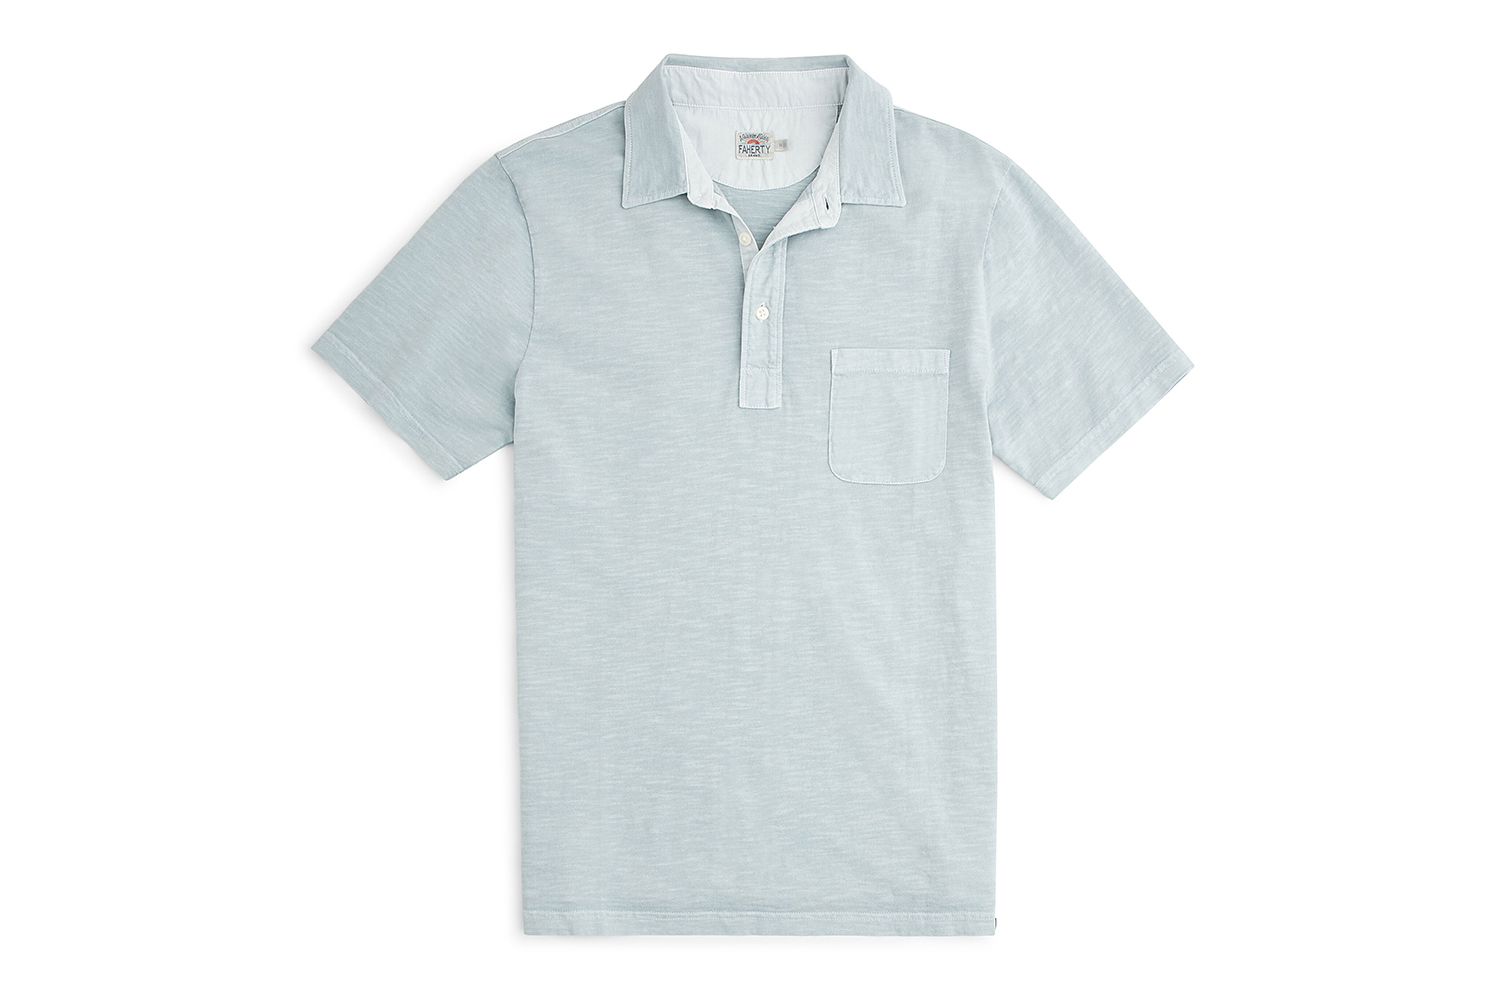 Faherty Brand Sunwashed Polo Shirt